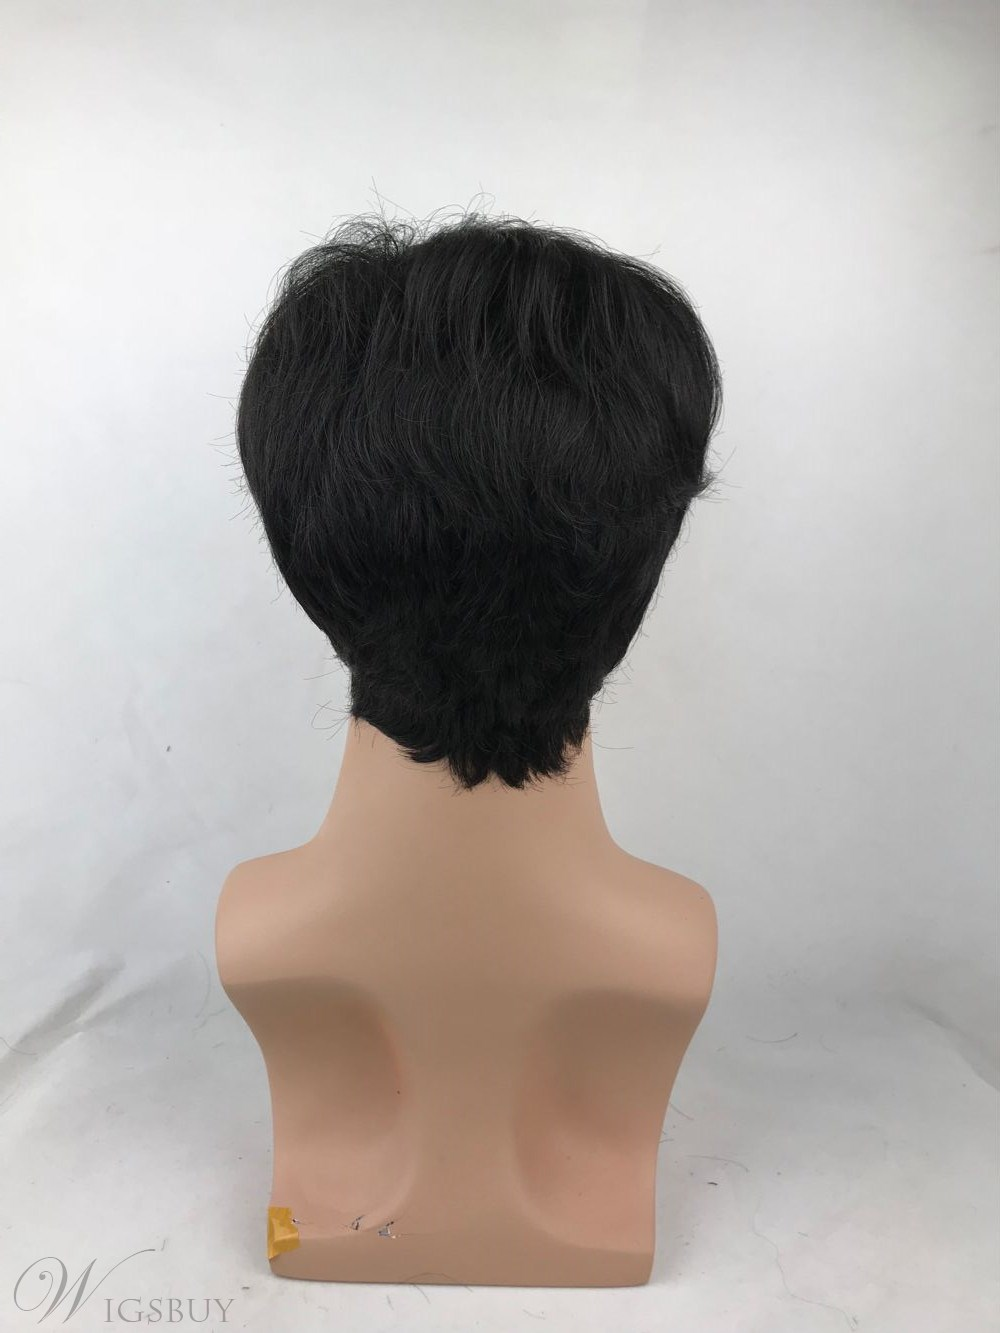 Short Hairtstyle Synthetic Hair Straight Men's Wig